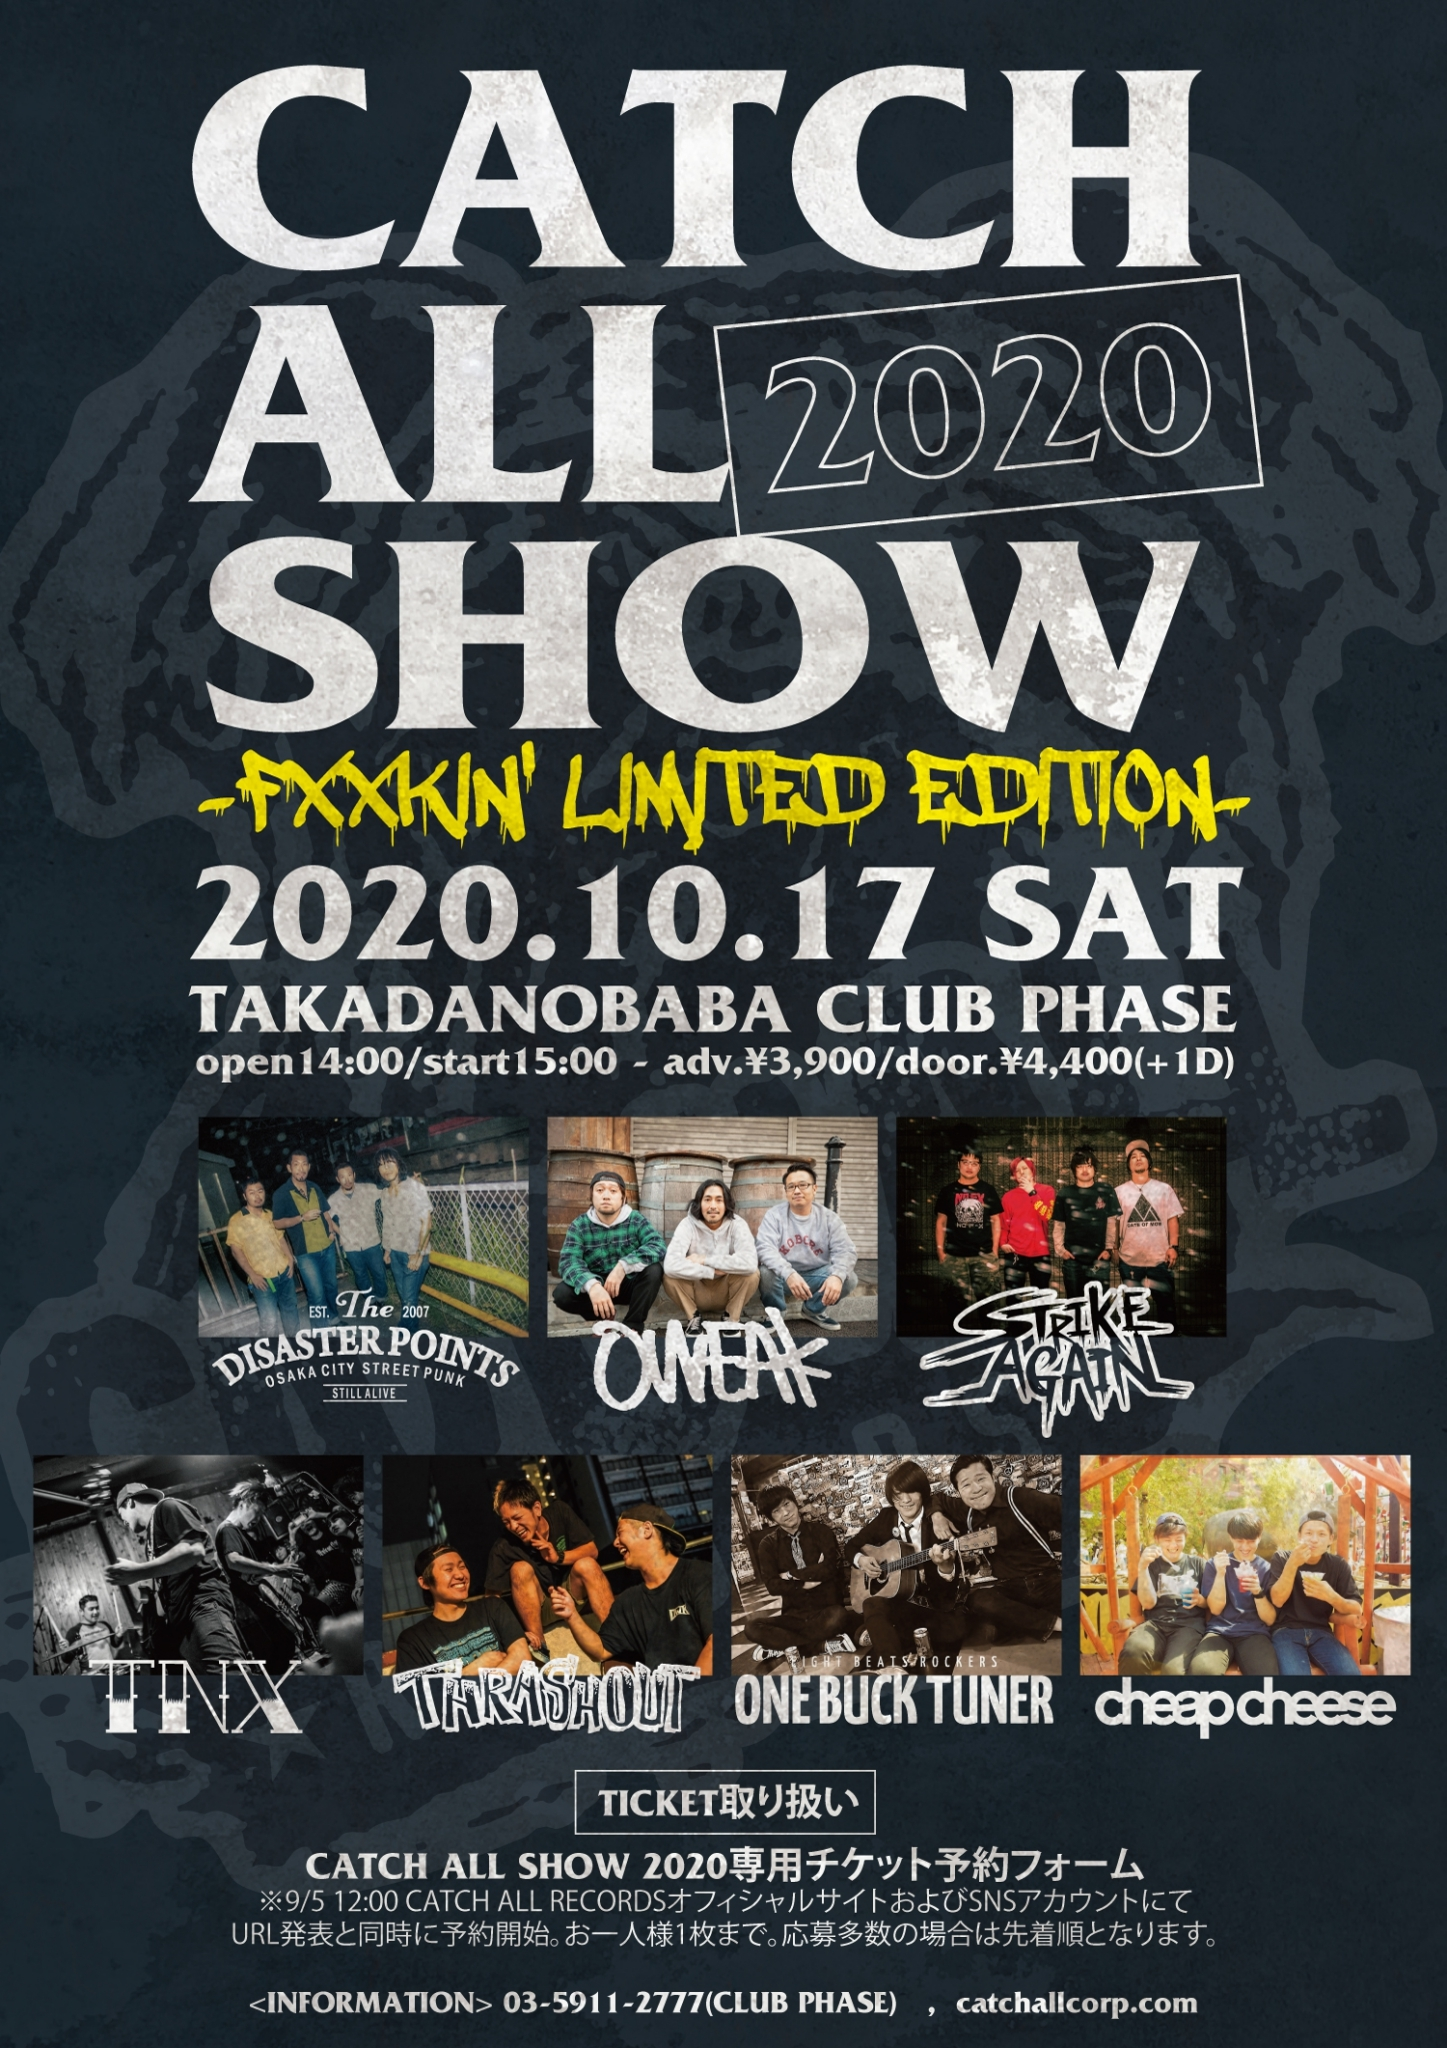 CATCH ALL SHOW 2020 開催決定